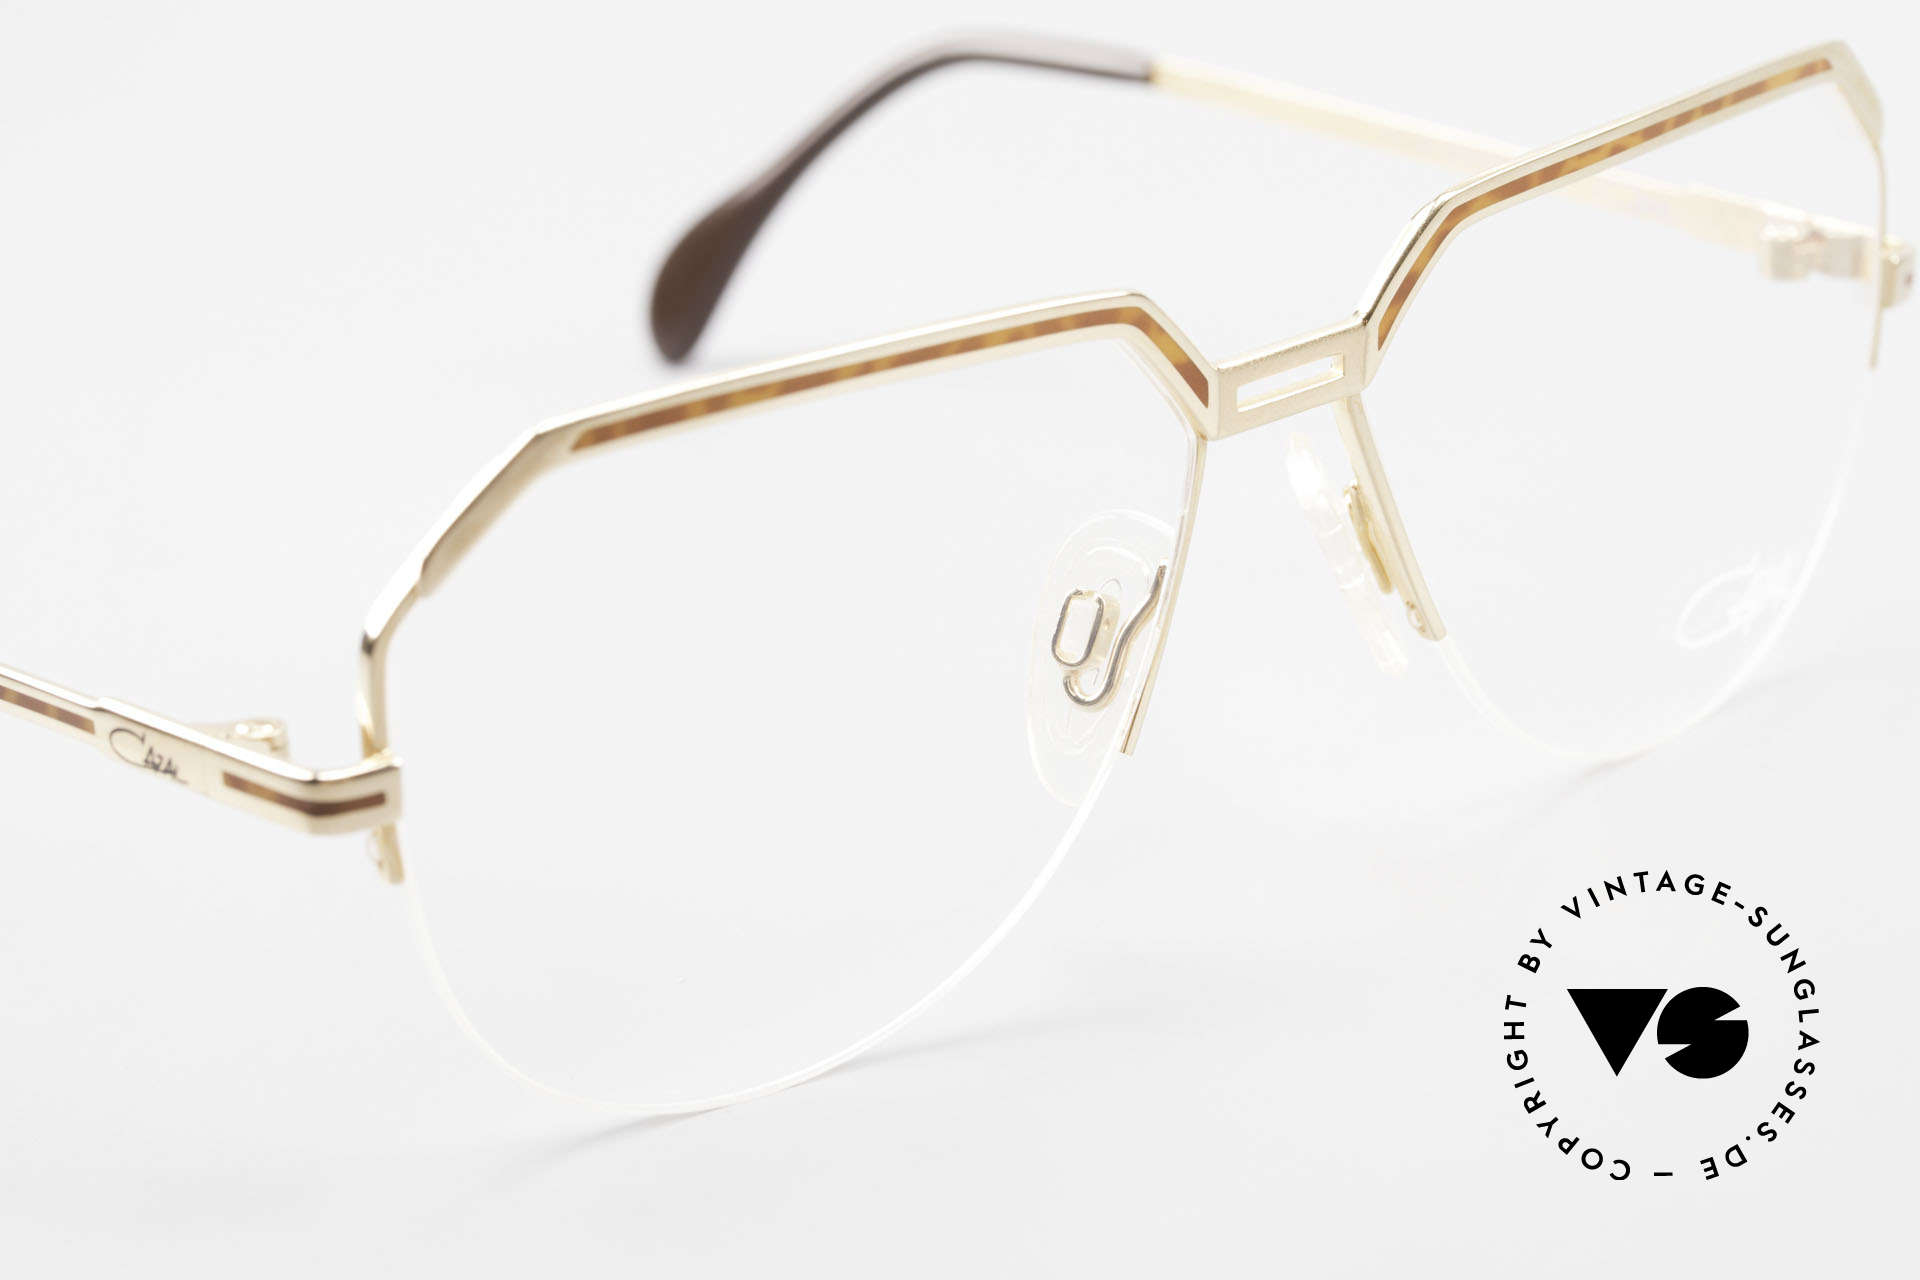 Cazal 732 80's West Germany Eyeglasses, NO retro glasses, but a rare 35 years old original!, Made for Men